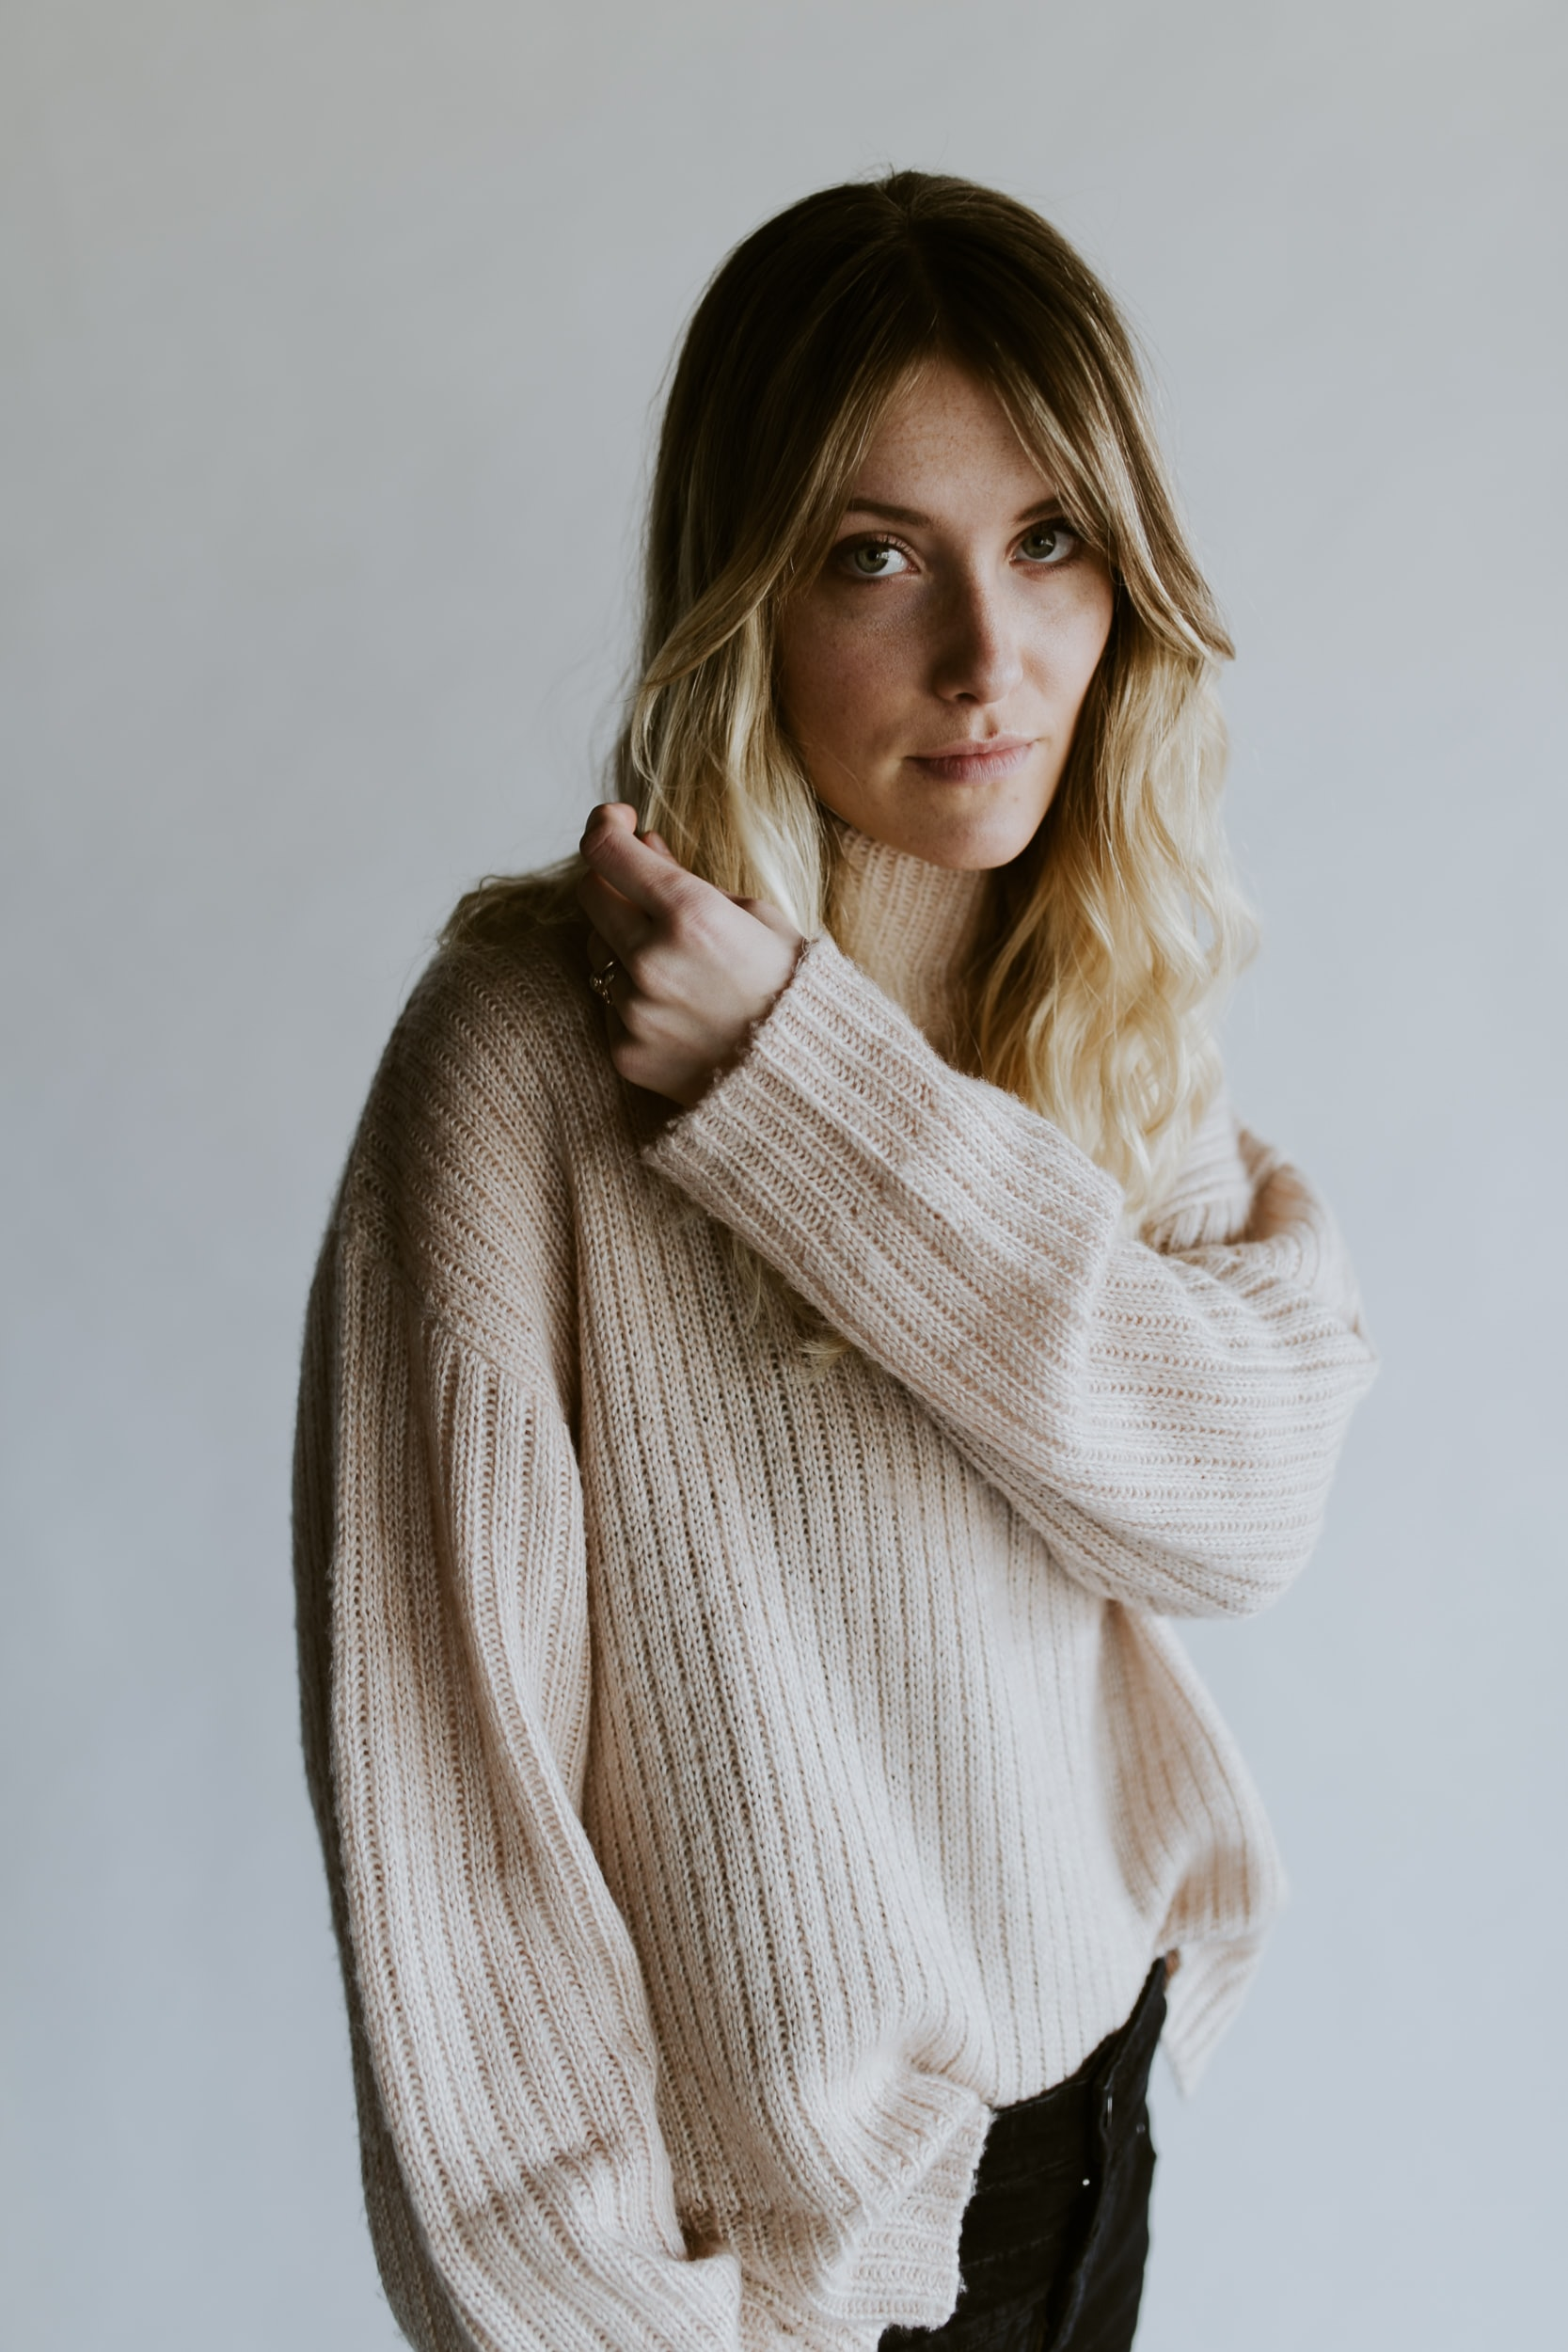 A portrait of a blonde woman wearing a sweater in Springfield